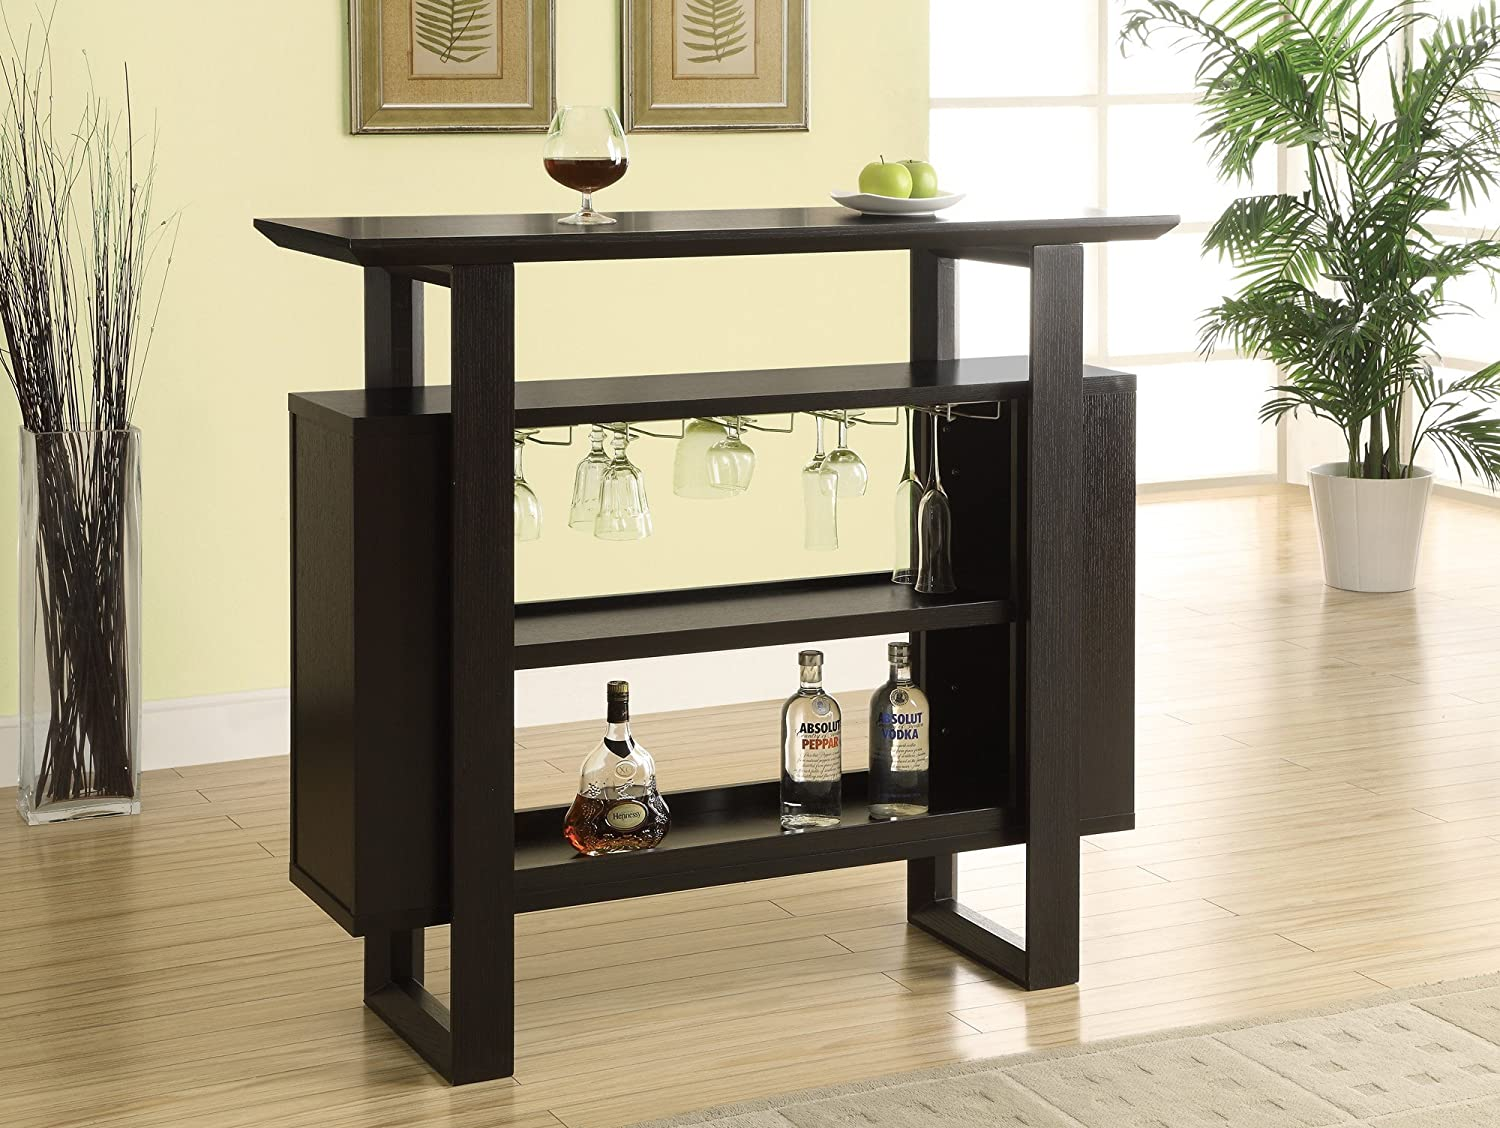 48-Inch Monarch Specialties Bar Unit with Bottle and Glass Storage Cappuccino